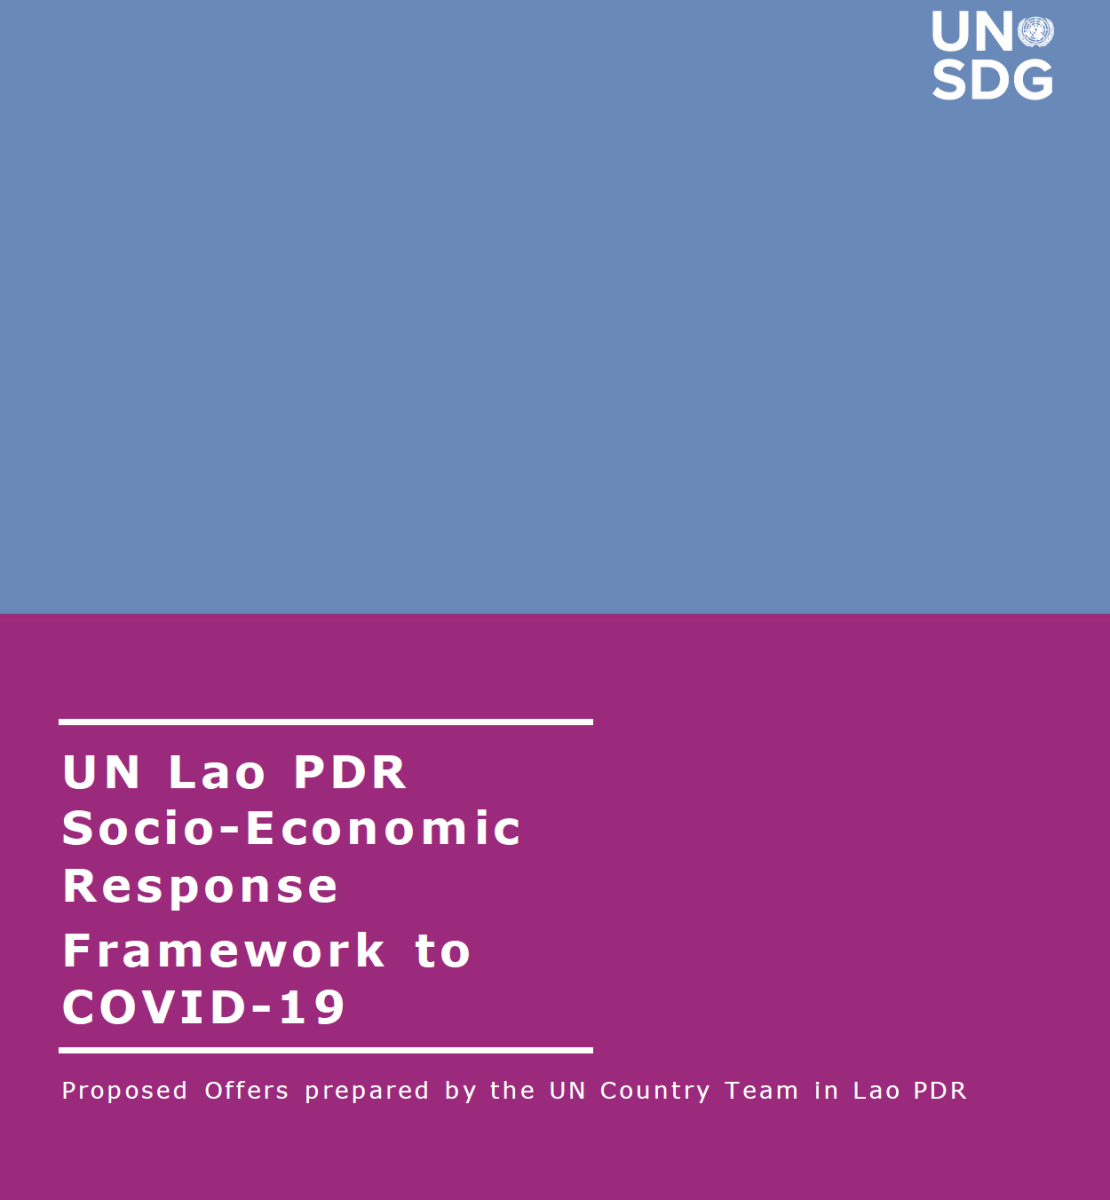 """Cover shows the title """"UN Lao PDR Socio-Economic Response Framework to COVID-19,  over blue and purple background."""